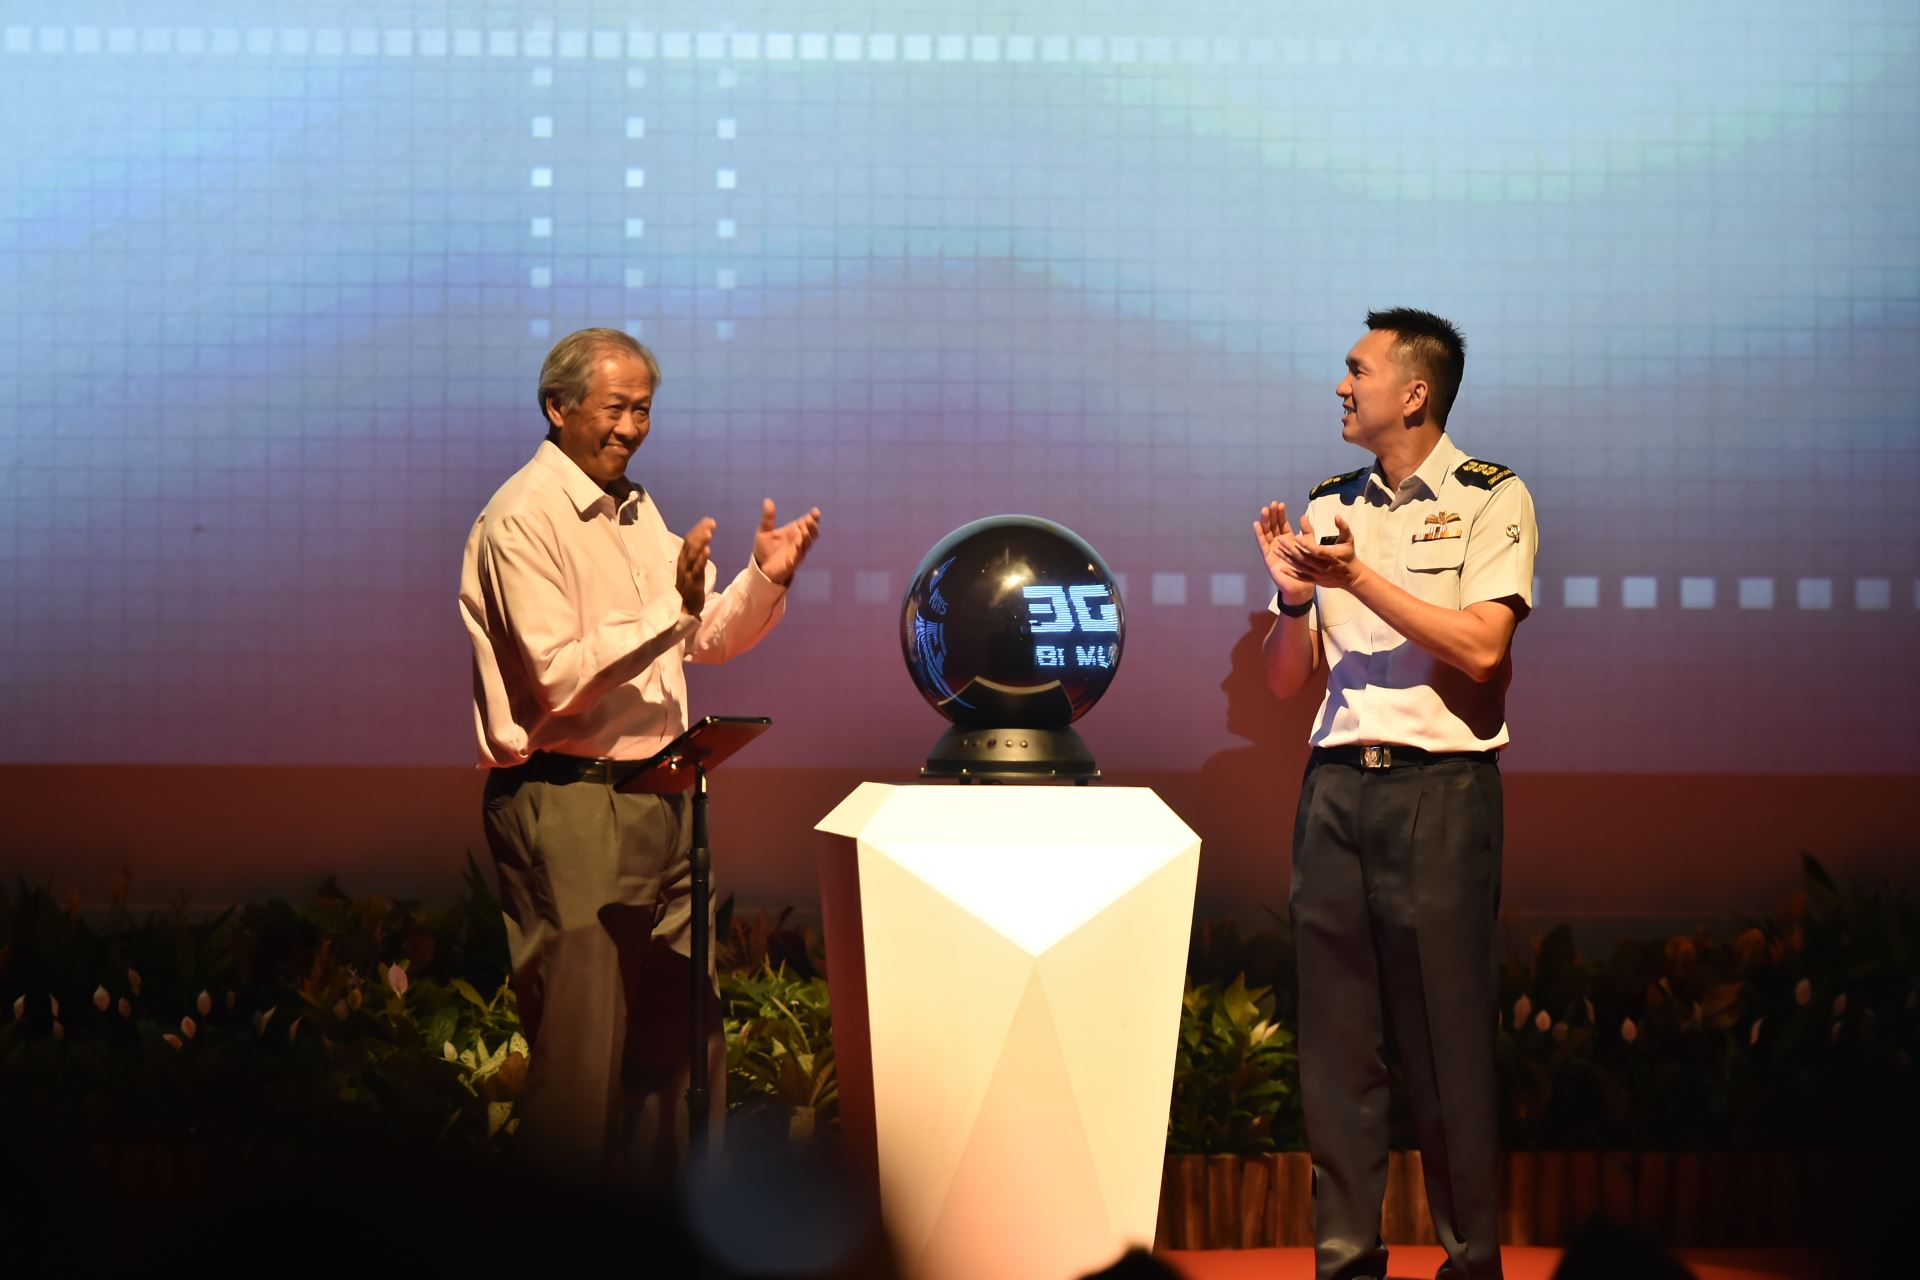 Minister for Defence Dr Ng Eng Hen (left) and Commander Air Combat Command Colonel Ho Kum Luen from the Republic of Singapore Air Force (right) launching the PRIDE Symposium 2018 at Nanyang Polytechnic this morning.